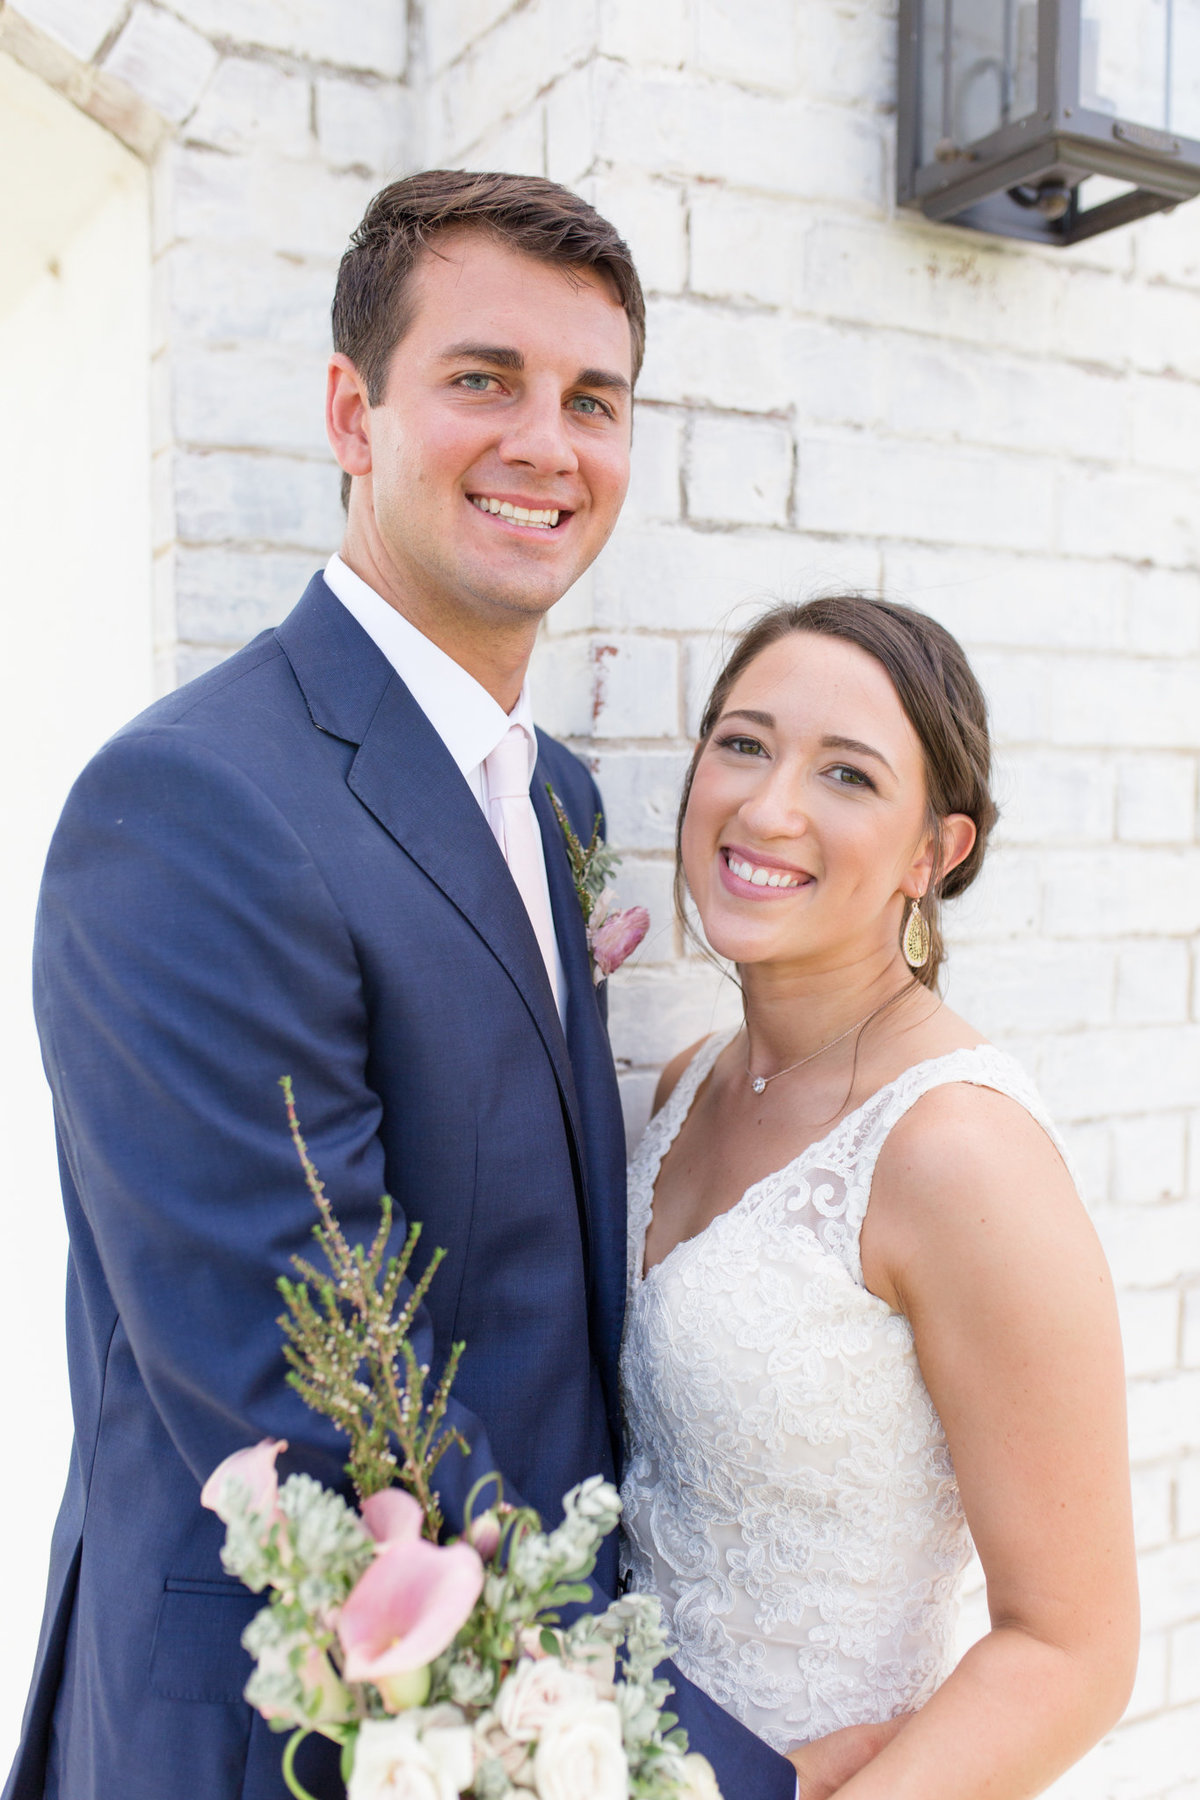 Grand Ivory Wedding| Dallas, Texas | DFW Wedding Photographer | Sami Kathryn Photography-1